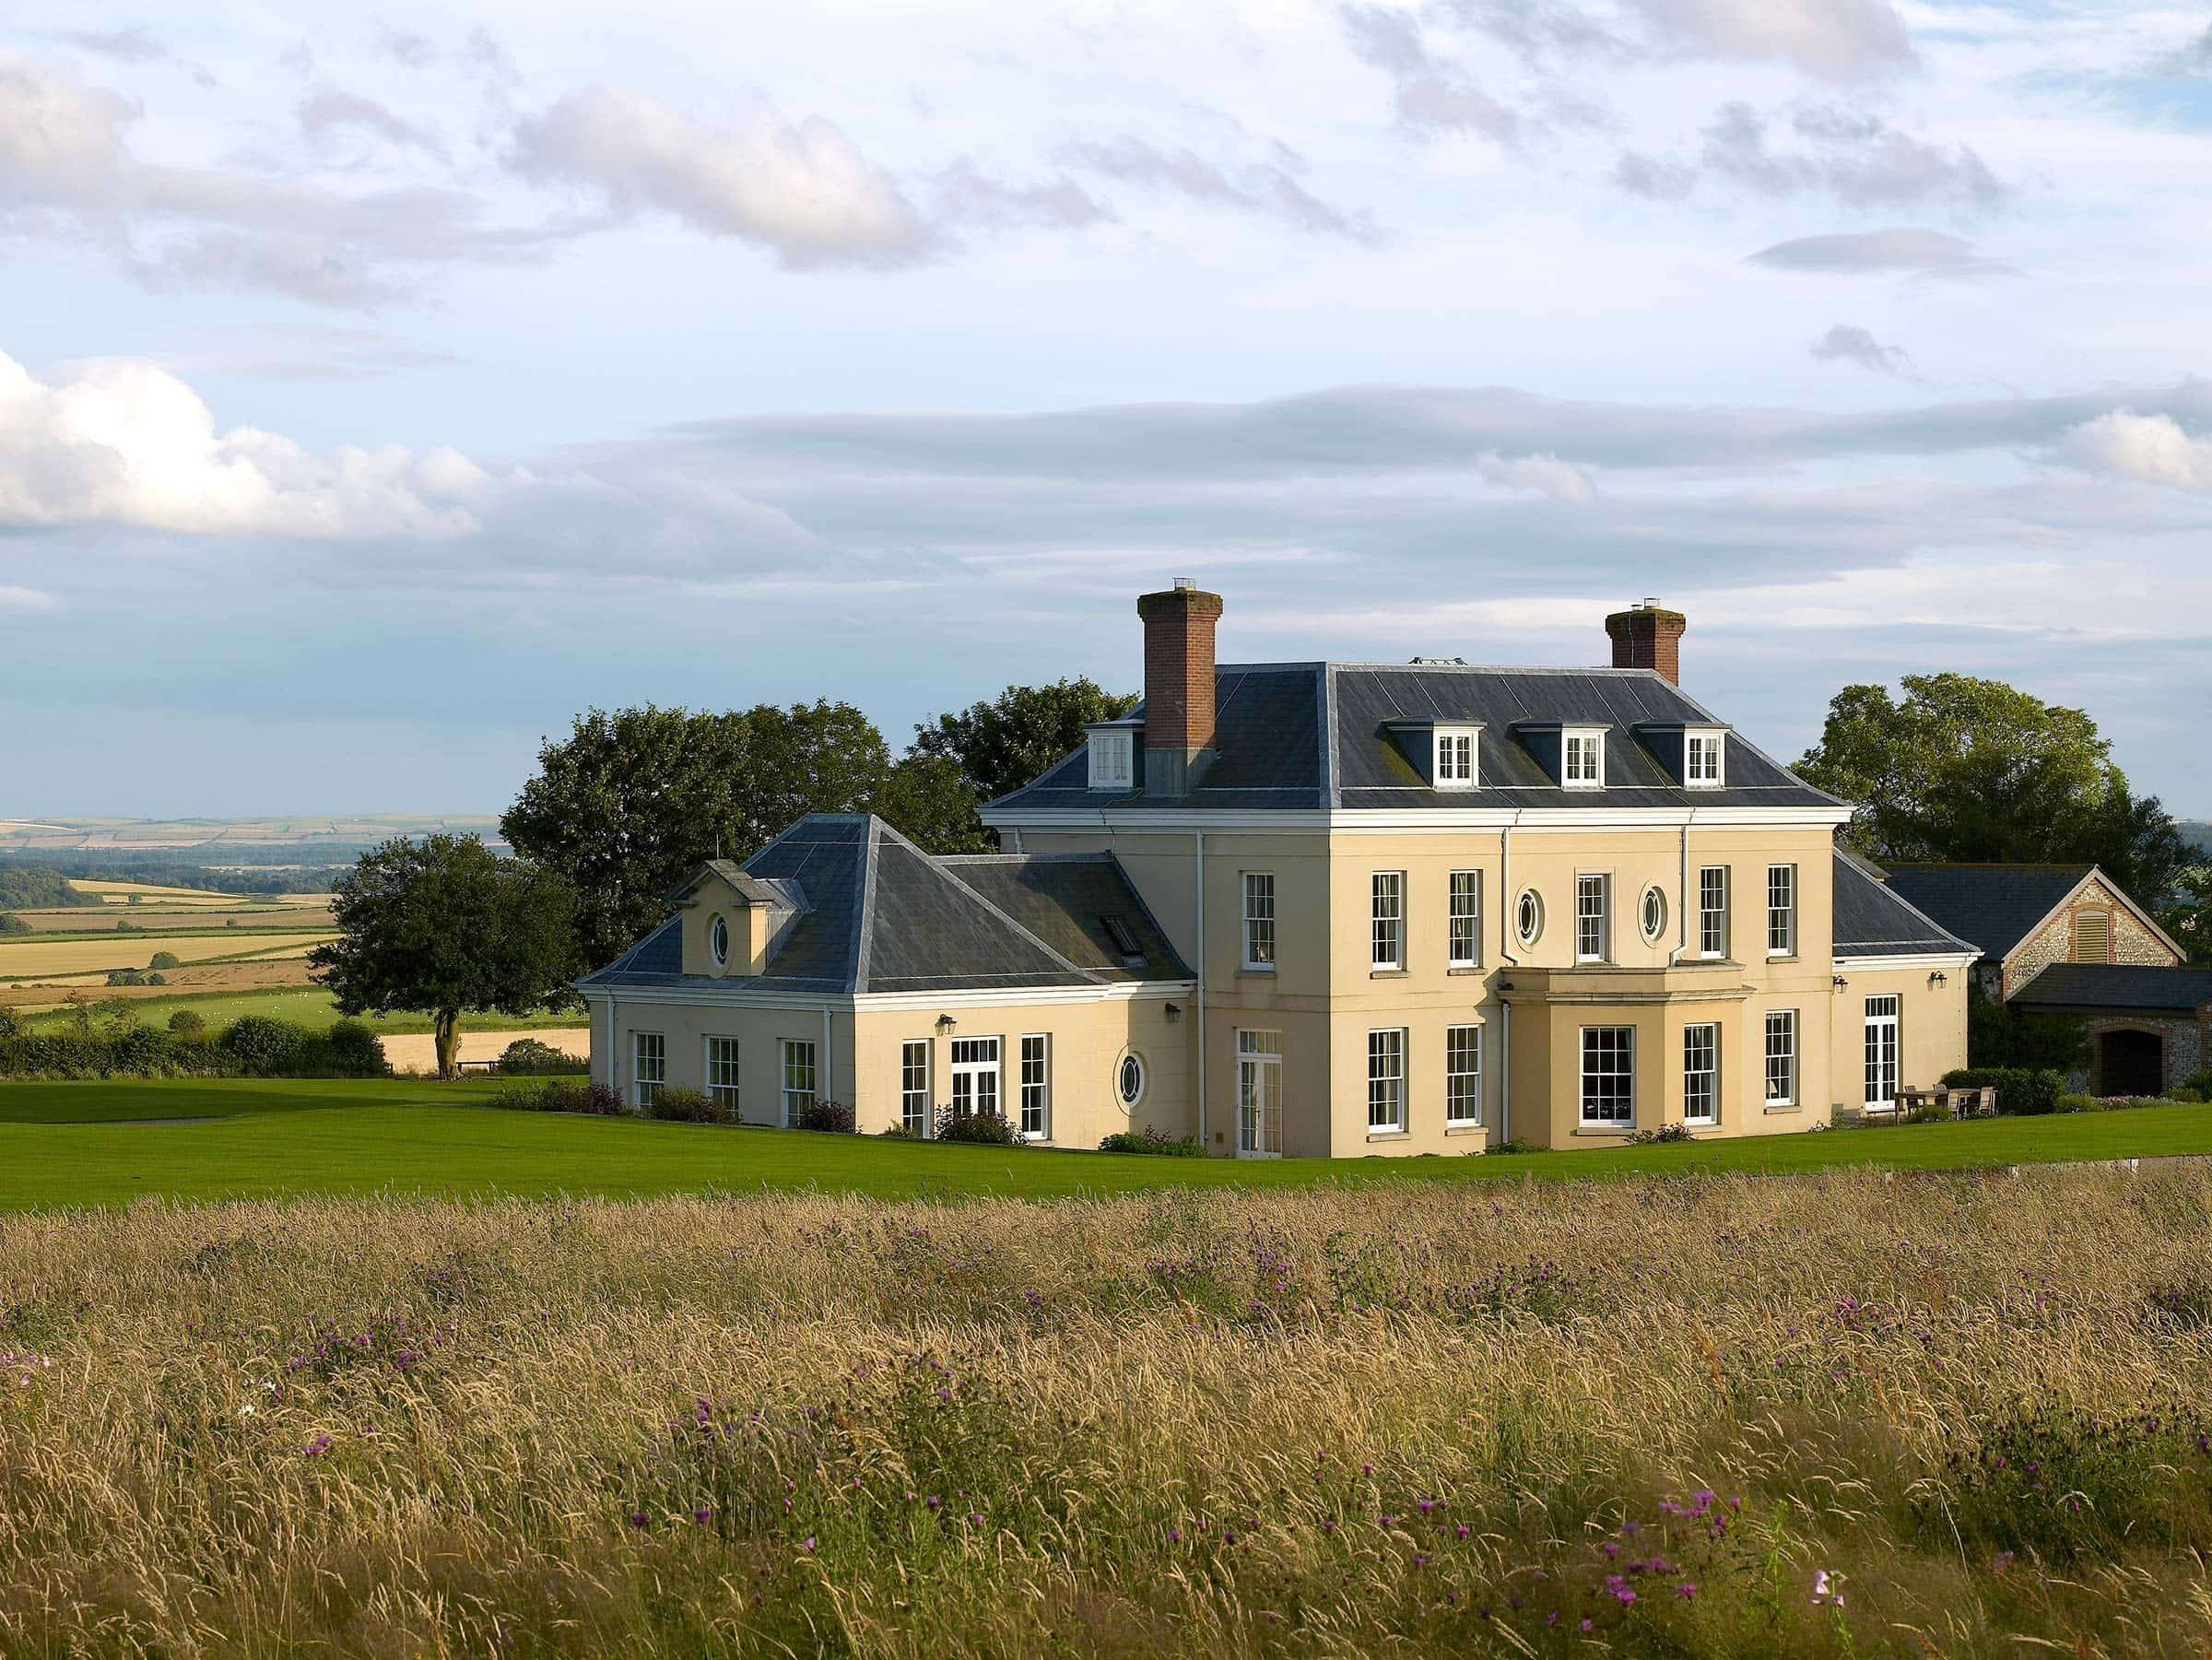 New Queen Anne house in Dorset